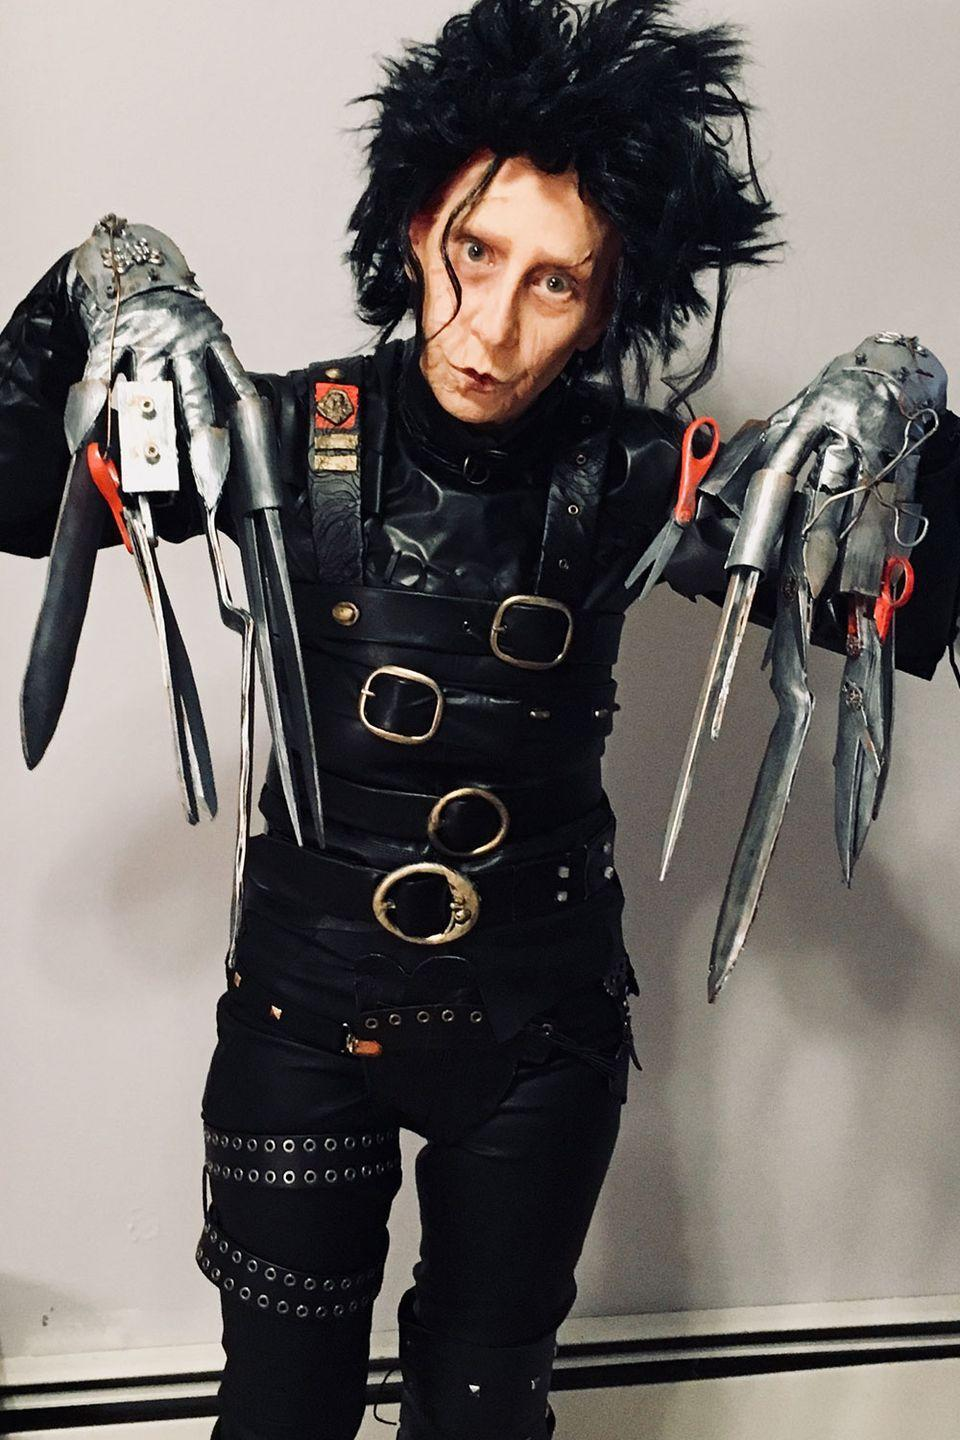 "<p>Whenever they do the inevitable remake/reboot of <em><a href=""https://www.amazon.com/Rubies-Heritage-Edward-Scissorhands-Costume/dp/B003O869V4?tag=syn-yahoo-20&ascsubtag=%5Bartid%7C10055.g.23653854%5Bsrc%7Cyahoo-us"" rel=""nofollow noopener"" target=""_blank"" data-ylk=""slk:Edward Scissorhands"" class=""link rapid-noclick-resp"">Edward Scissorhands</a></em>, this woman needs to do the effects makeup.</p>"